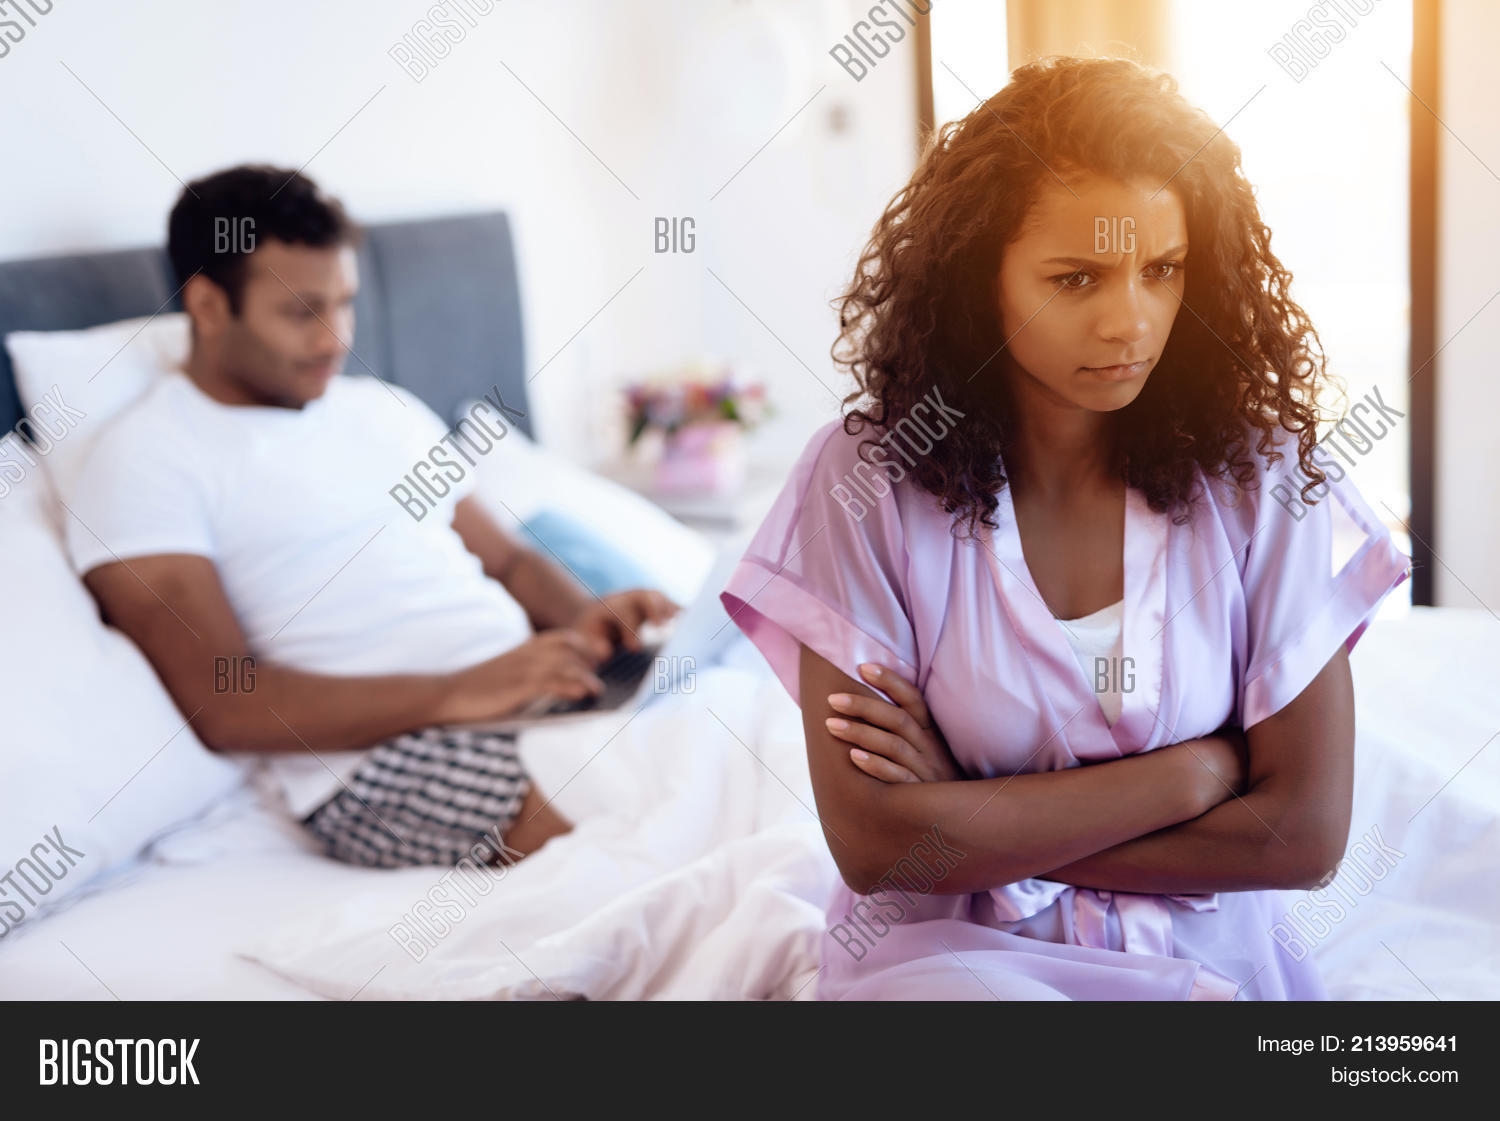 fe81f4678af8 Black man and woman in the bedroom. A man is lying on the bed with